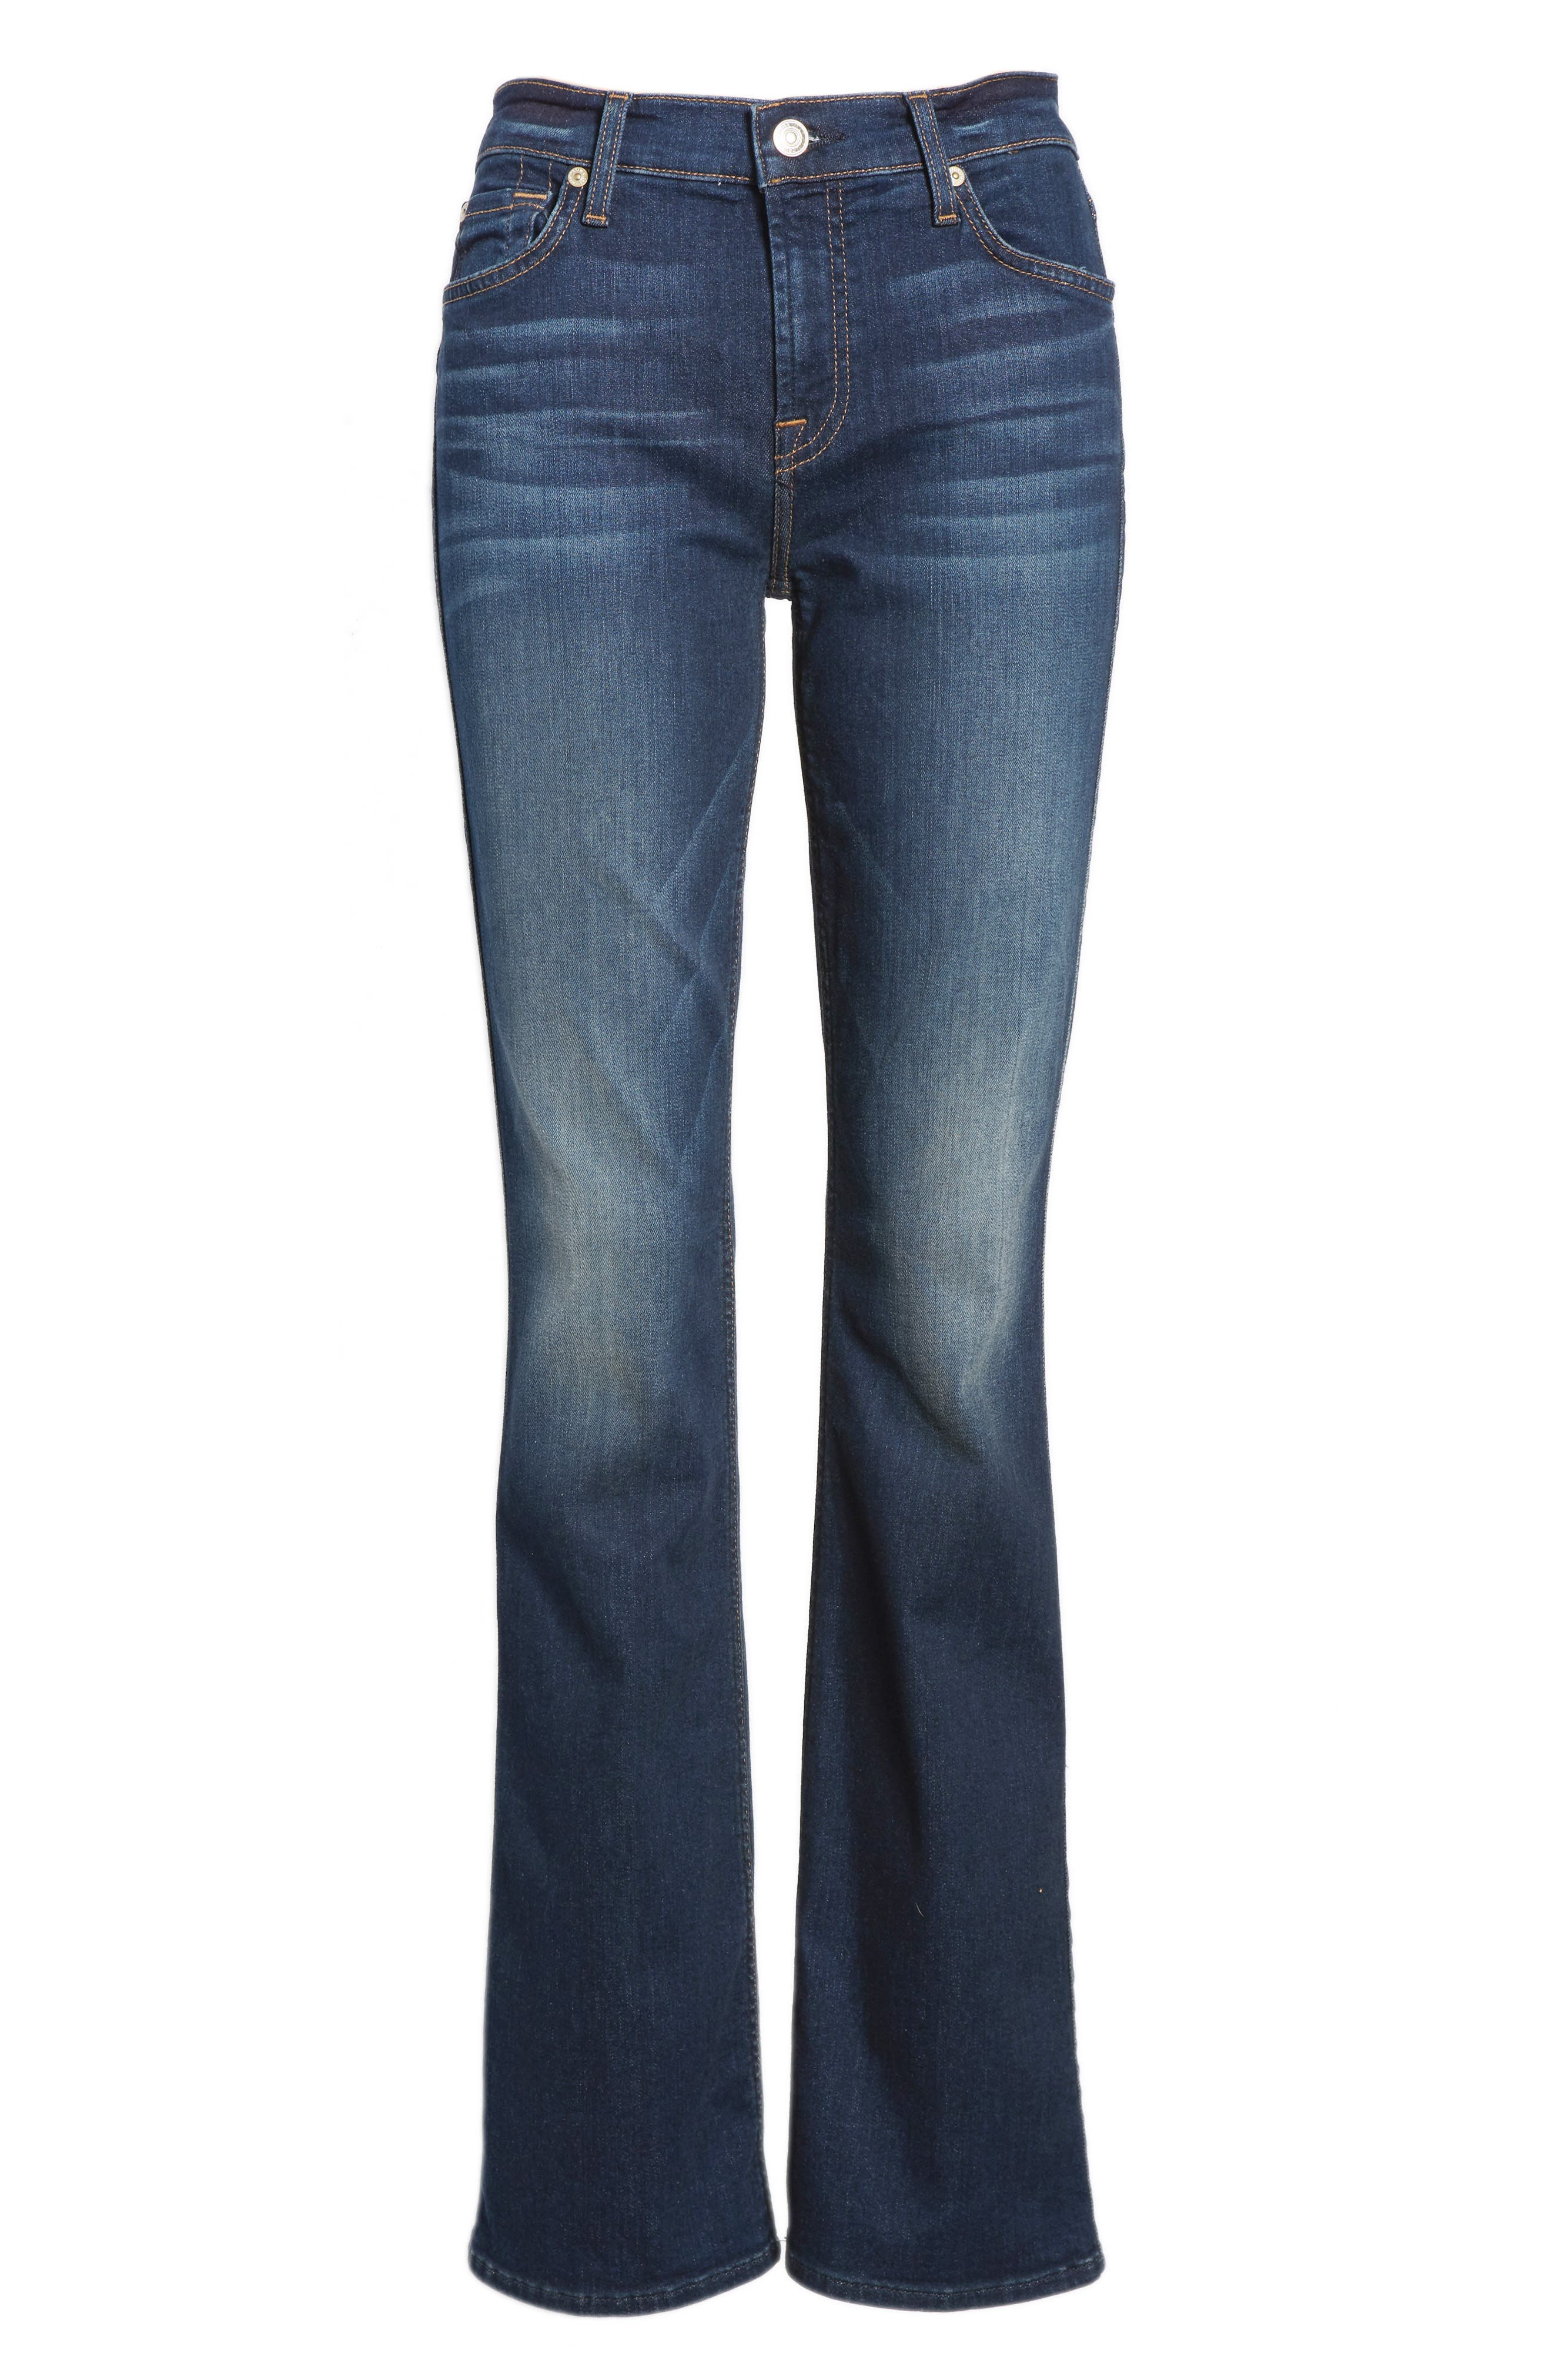 b(air) Iconic Bootcut Jeans,                             Alternate thumbnail 7, color,                             MORENO